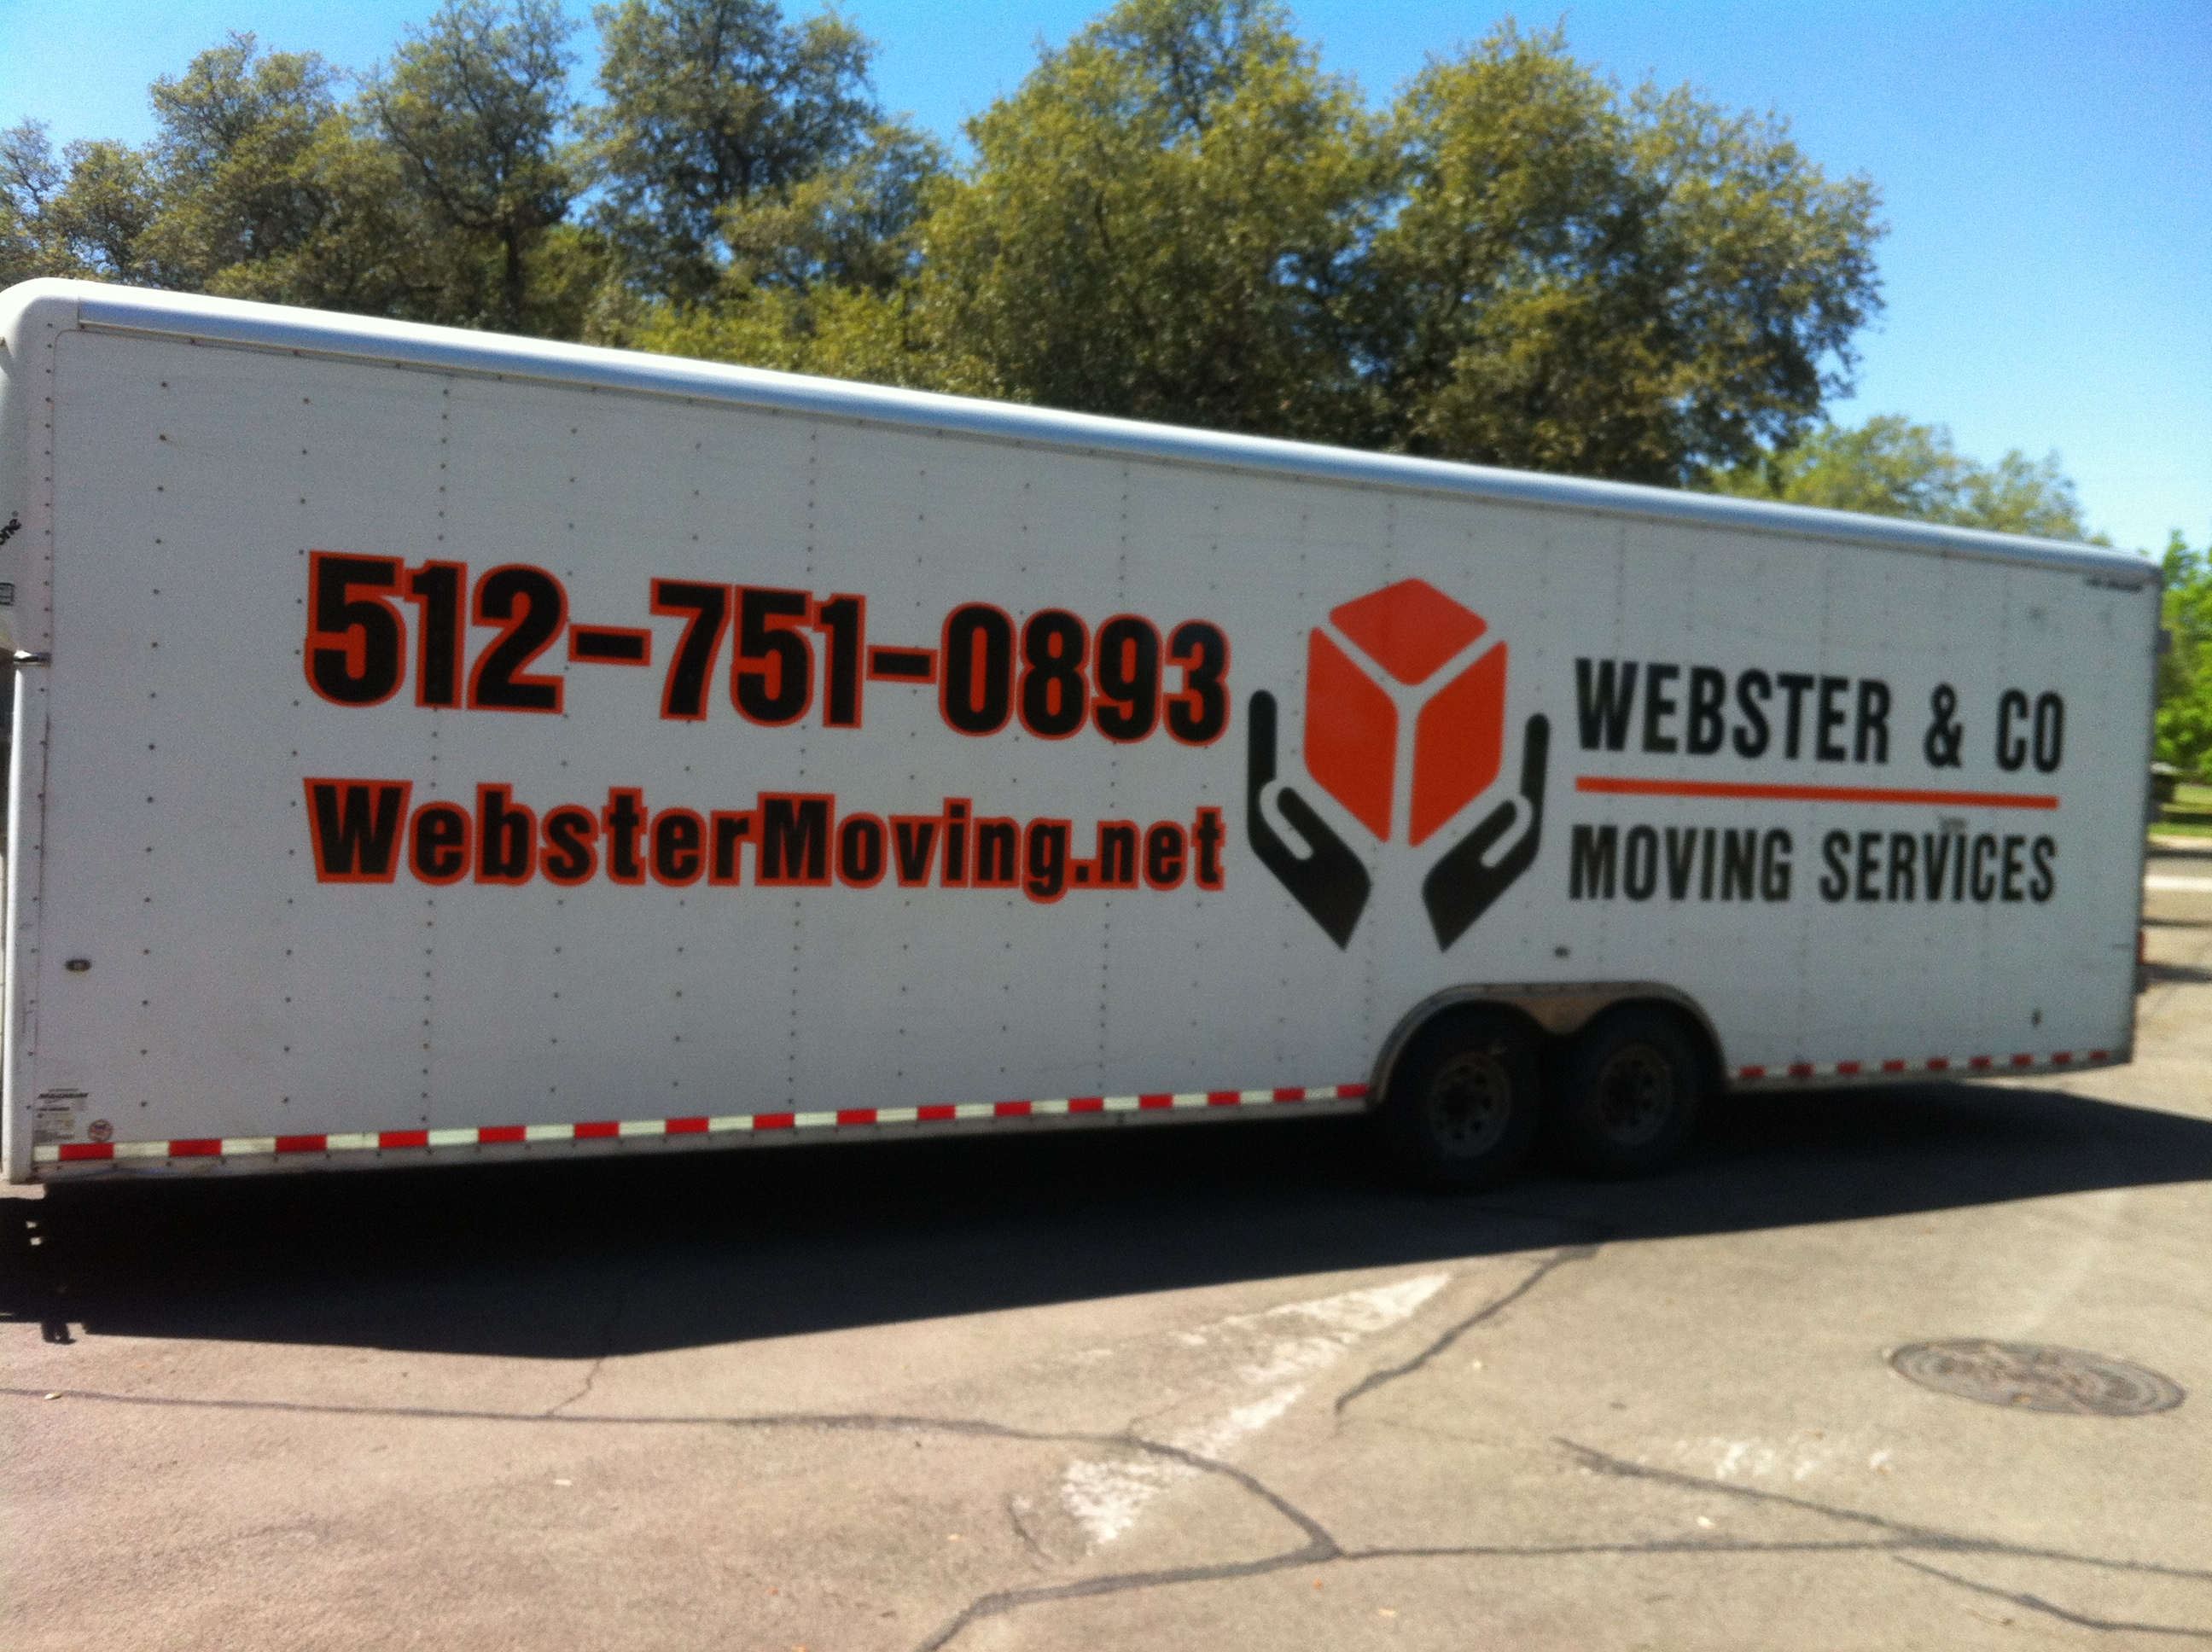 Webster moving trailer